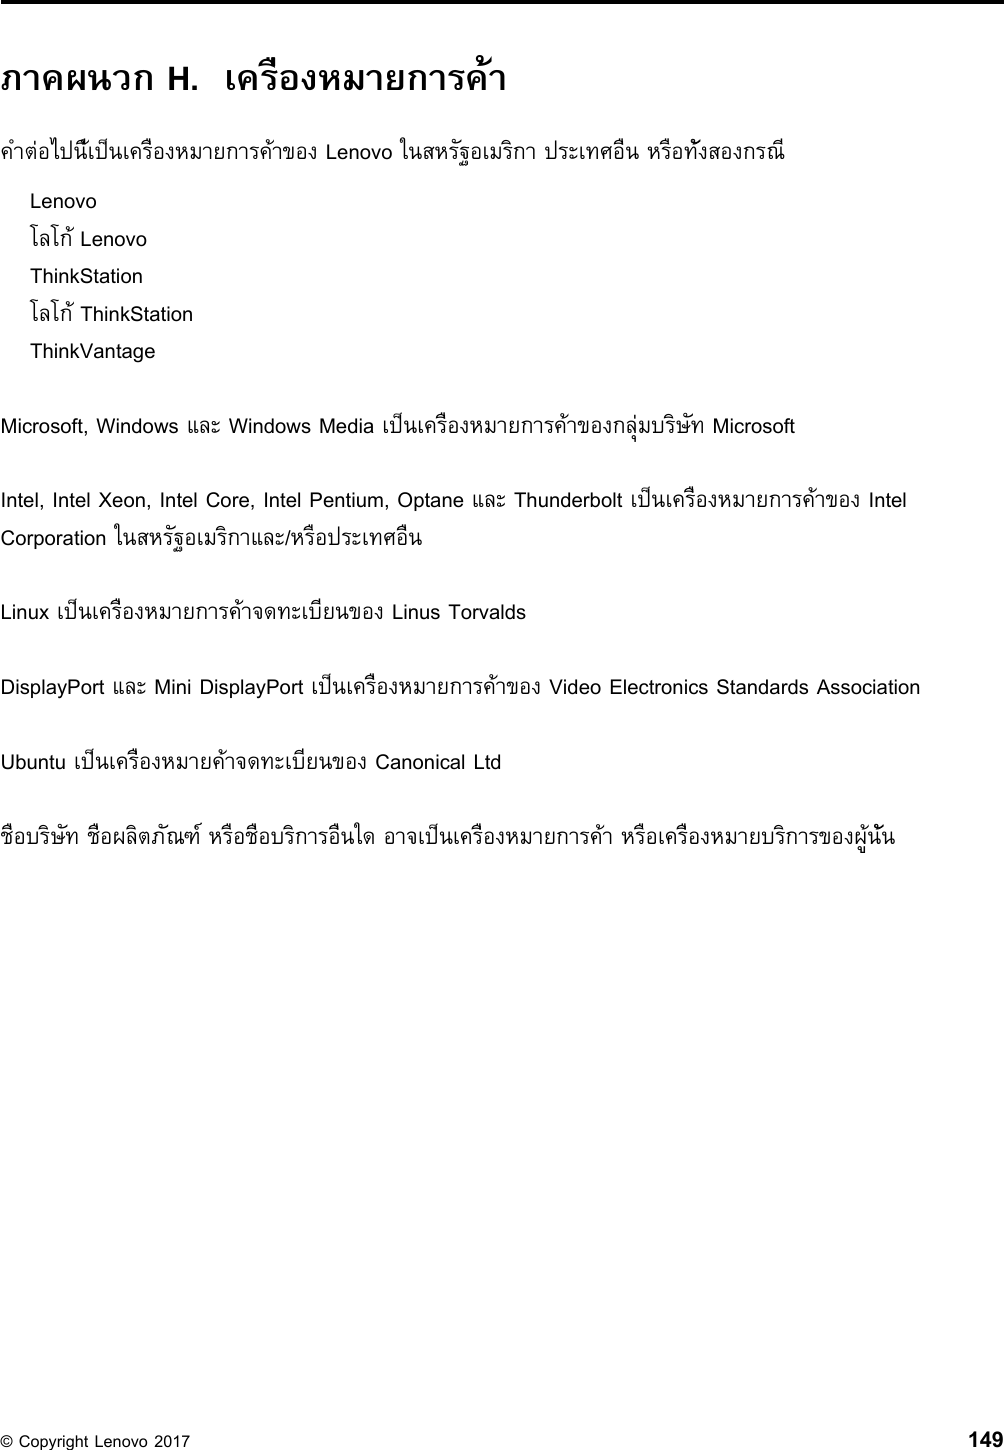 Lenovo P320 Tower Ug Th User Manual (Thai) Guide (Tower Form Factor